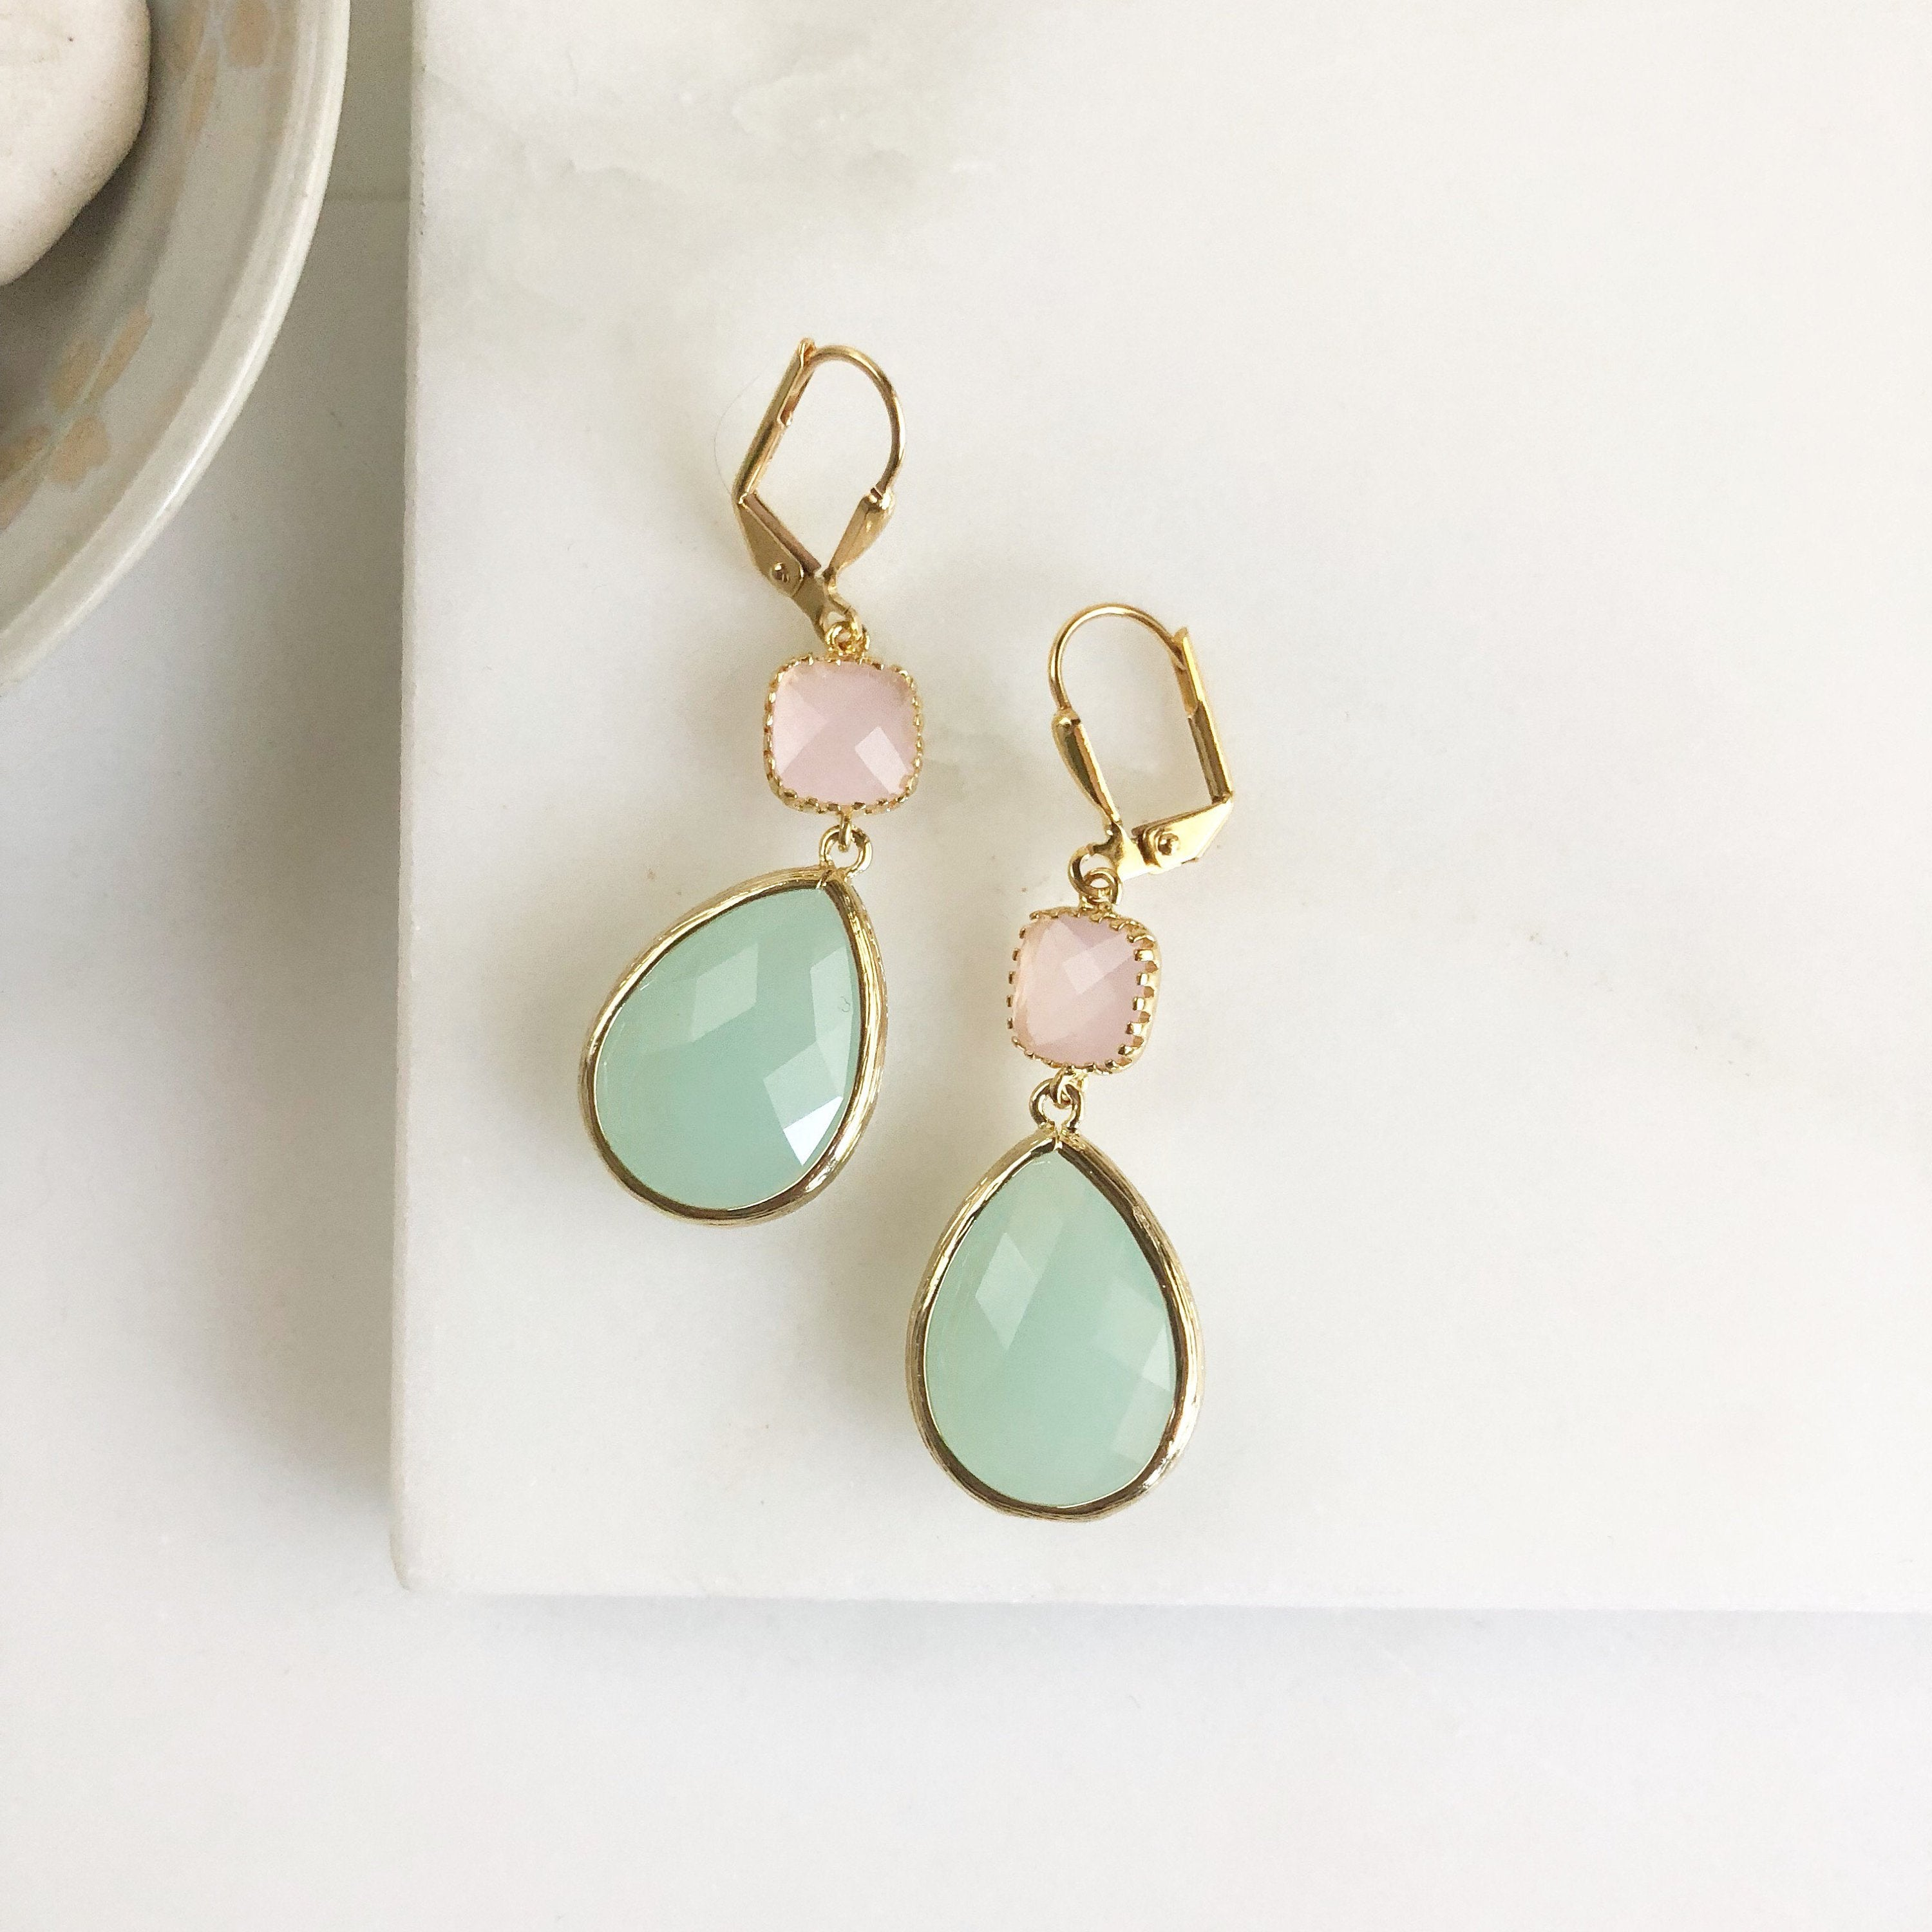 Bridesmaids Earrings in Mint and Pink. Wedding Jewelry. Dangle Earrings. Drop Earrings. Pink and Mint Green Bridesmaids Jewelry. Gift.